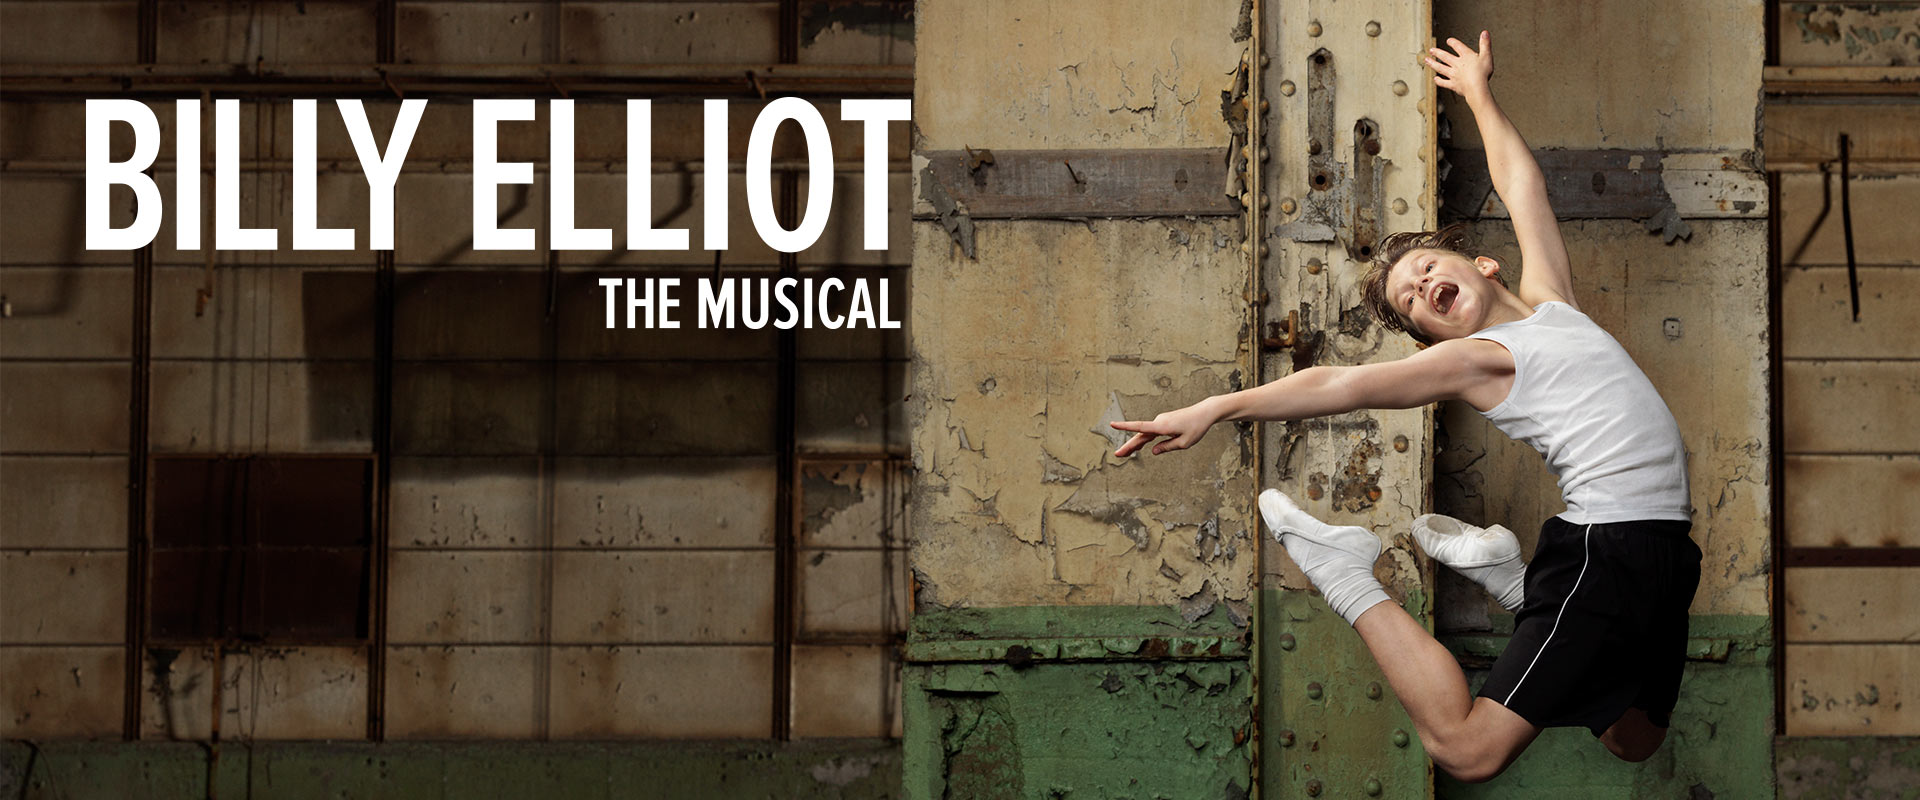 Publicity image from Billy Elliot the Musical